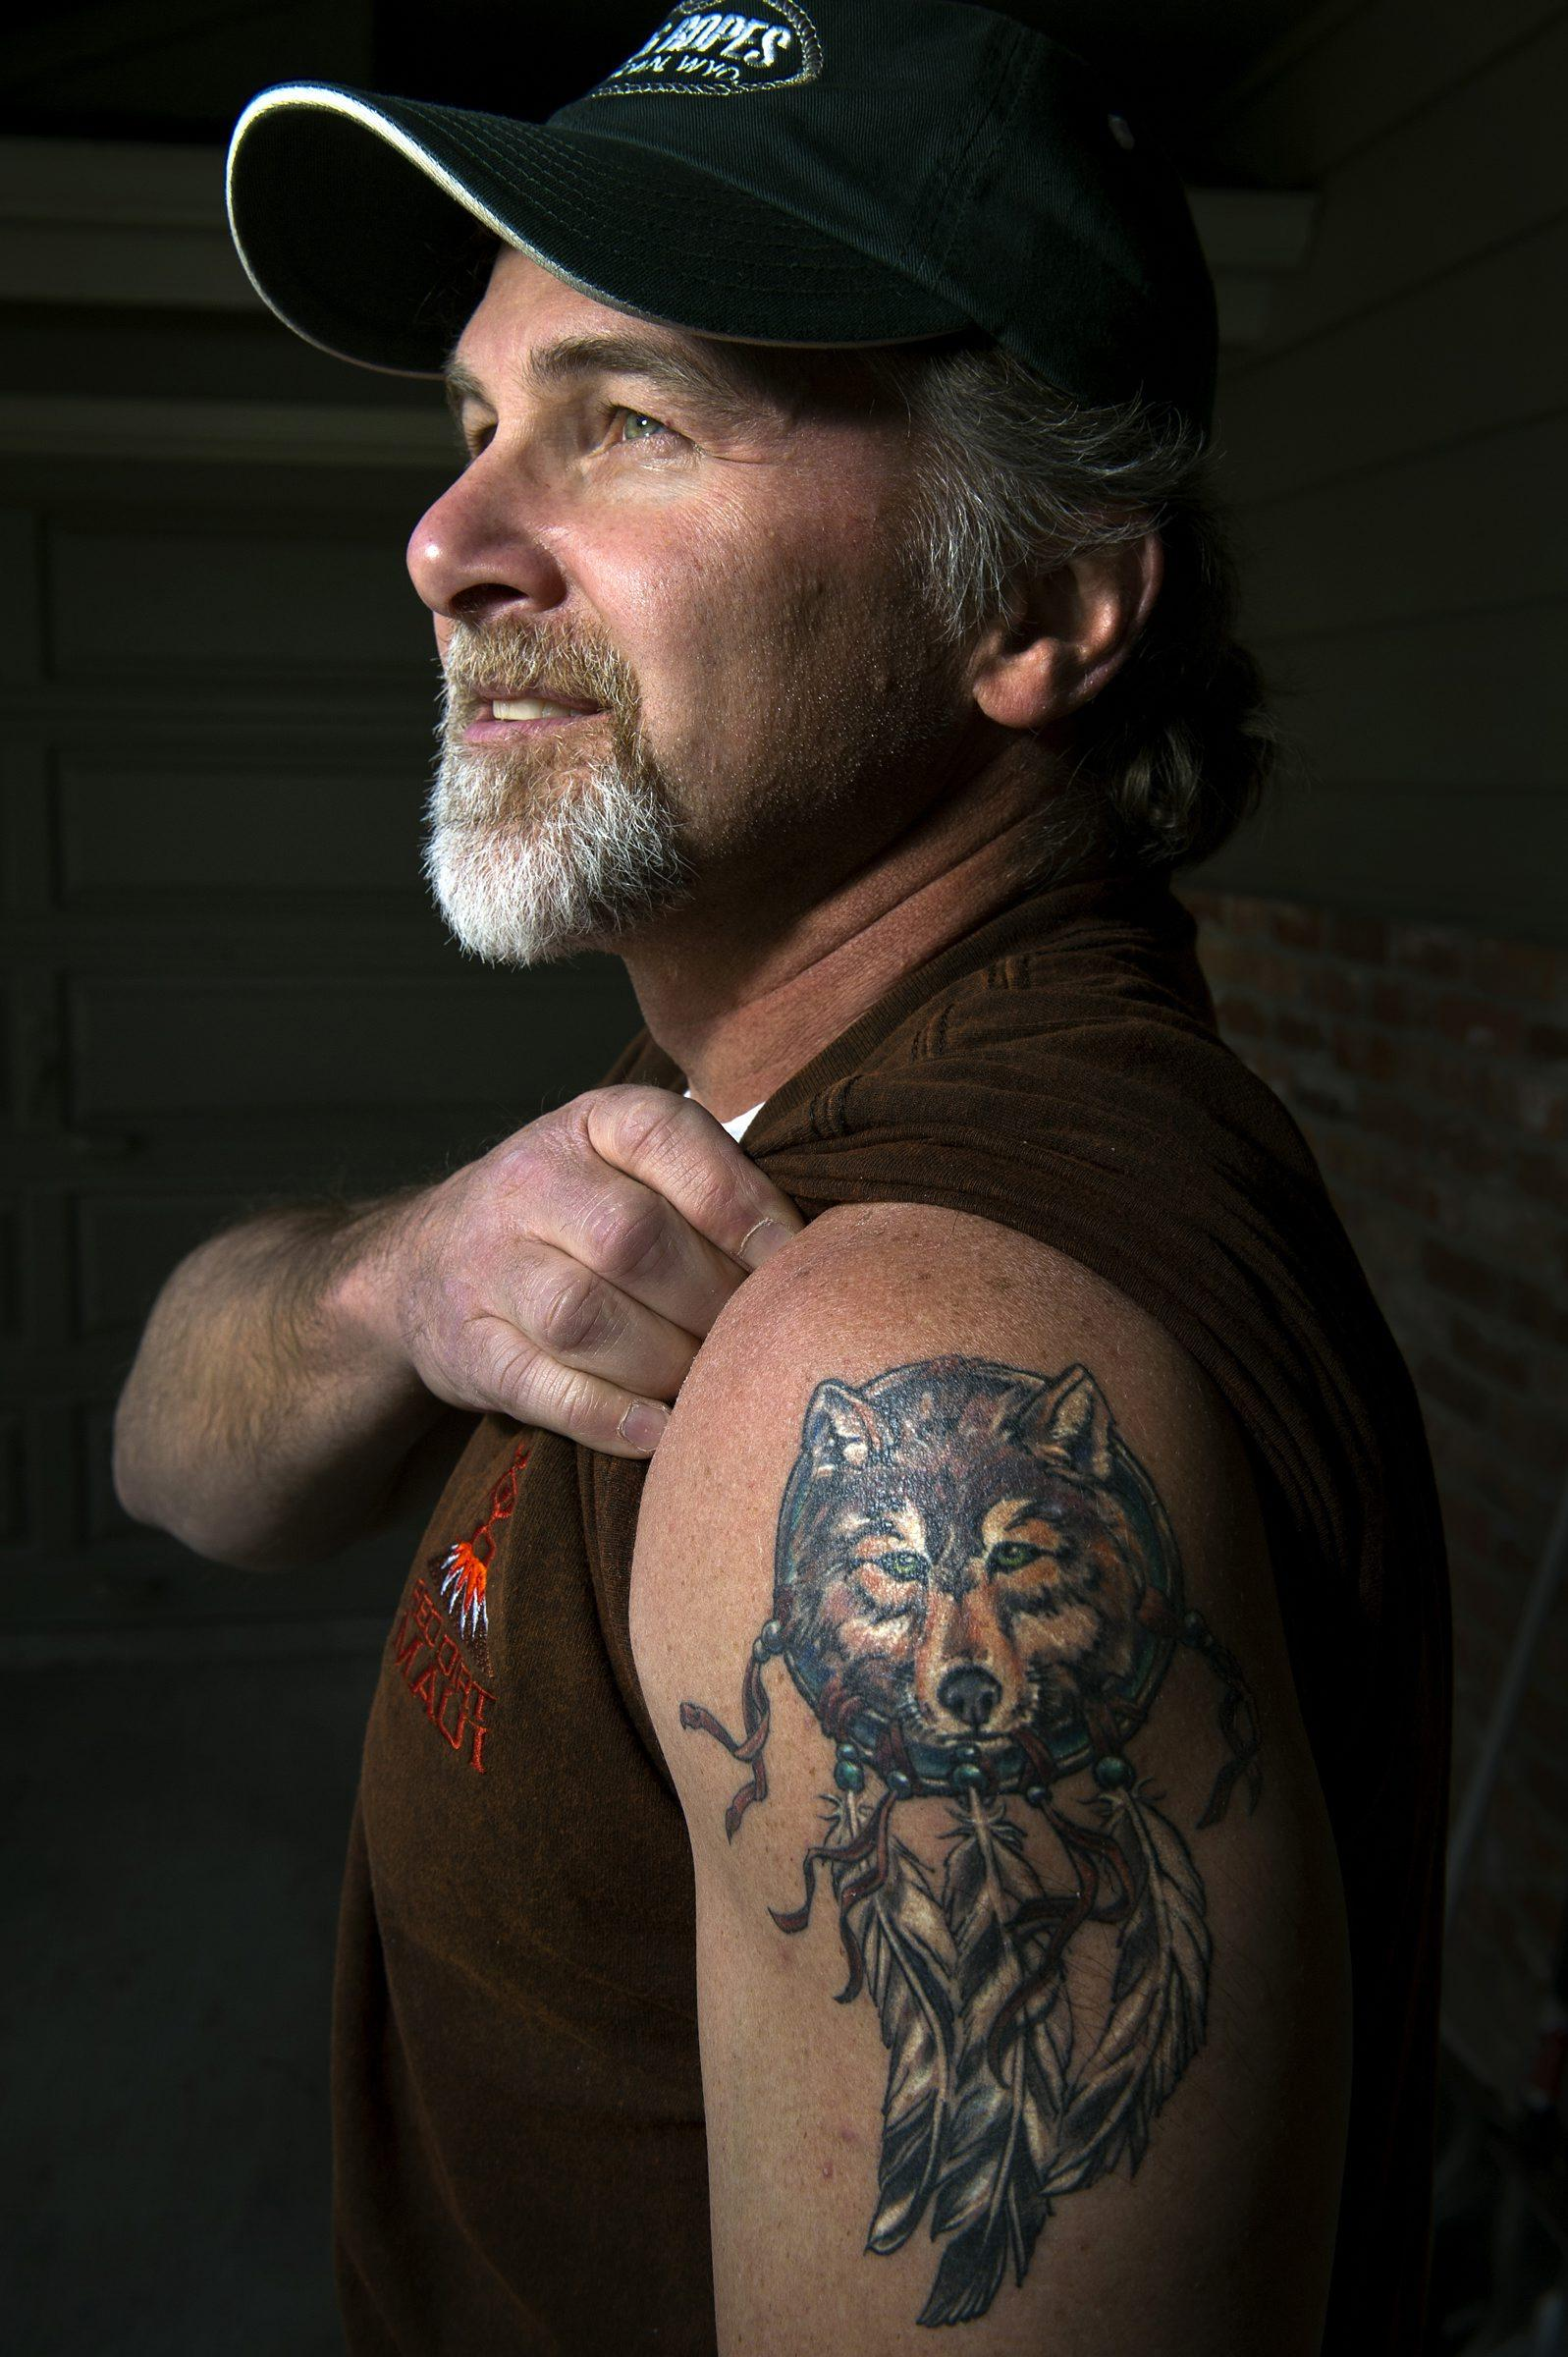 Steve Gilbertson's fascination with hiking and trail cameras led him to discover a new wolf pack in Washington, officially declared one of the state's 13 packs in March 2014. Gilbertson got to name the pack, and celebrated the occasion by having artwork of a wolf tattooed on his arm. COLIN MULVANY colinm@spokesman.com